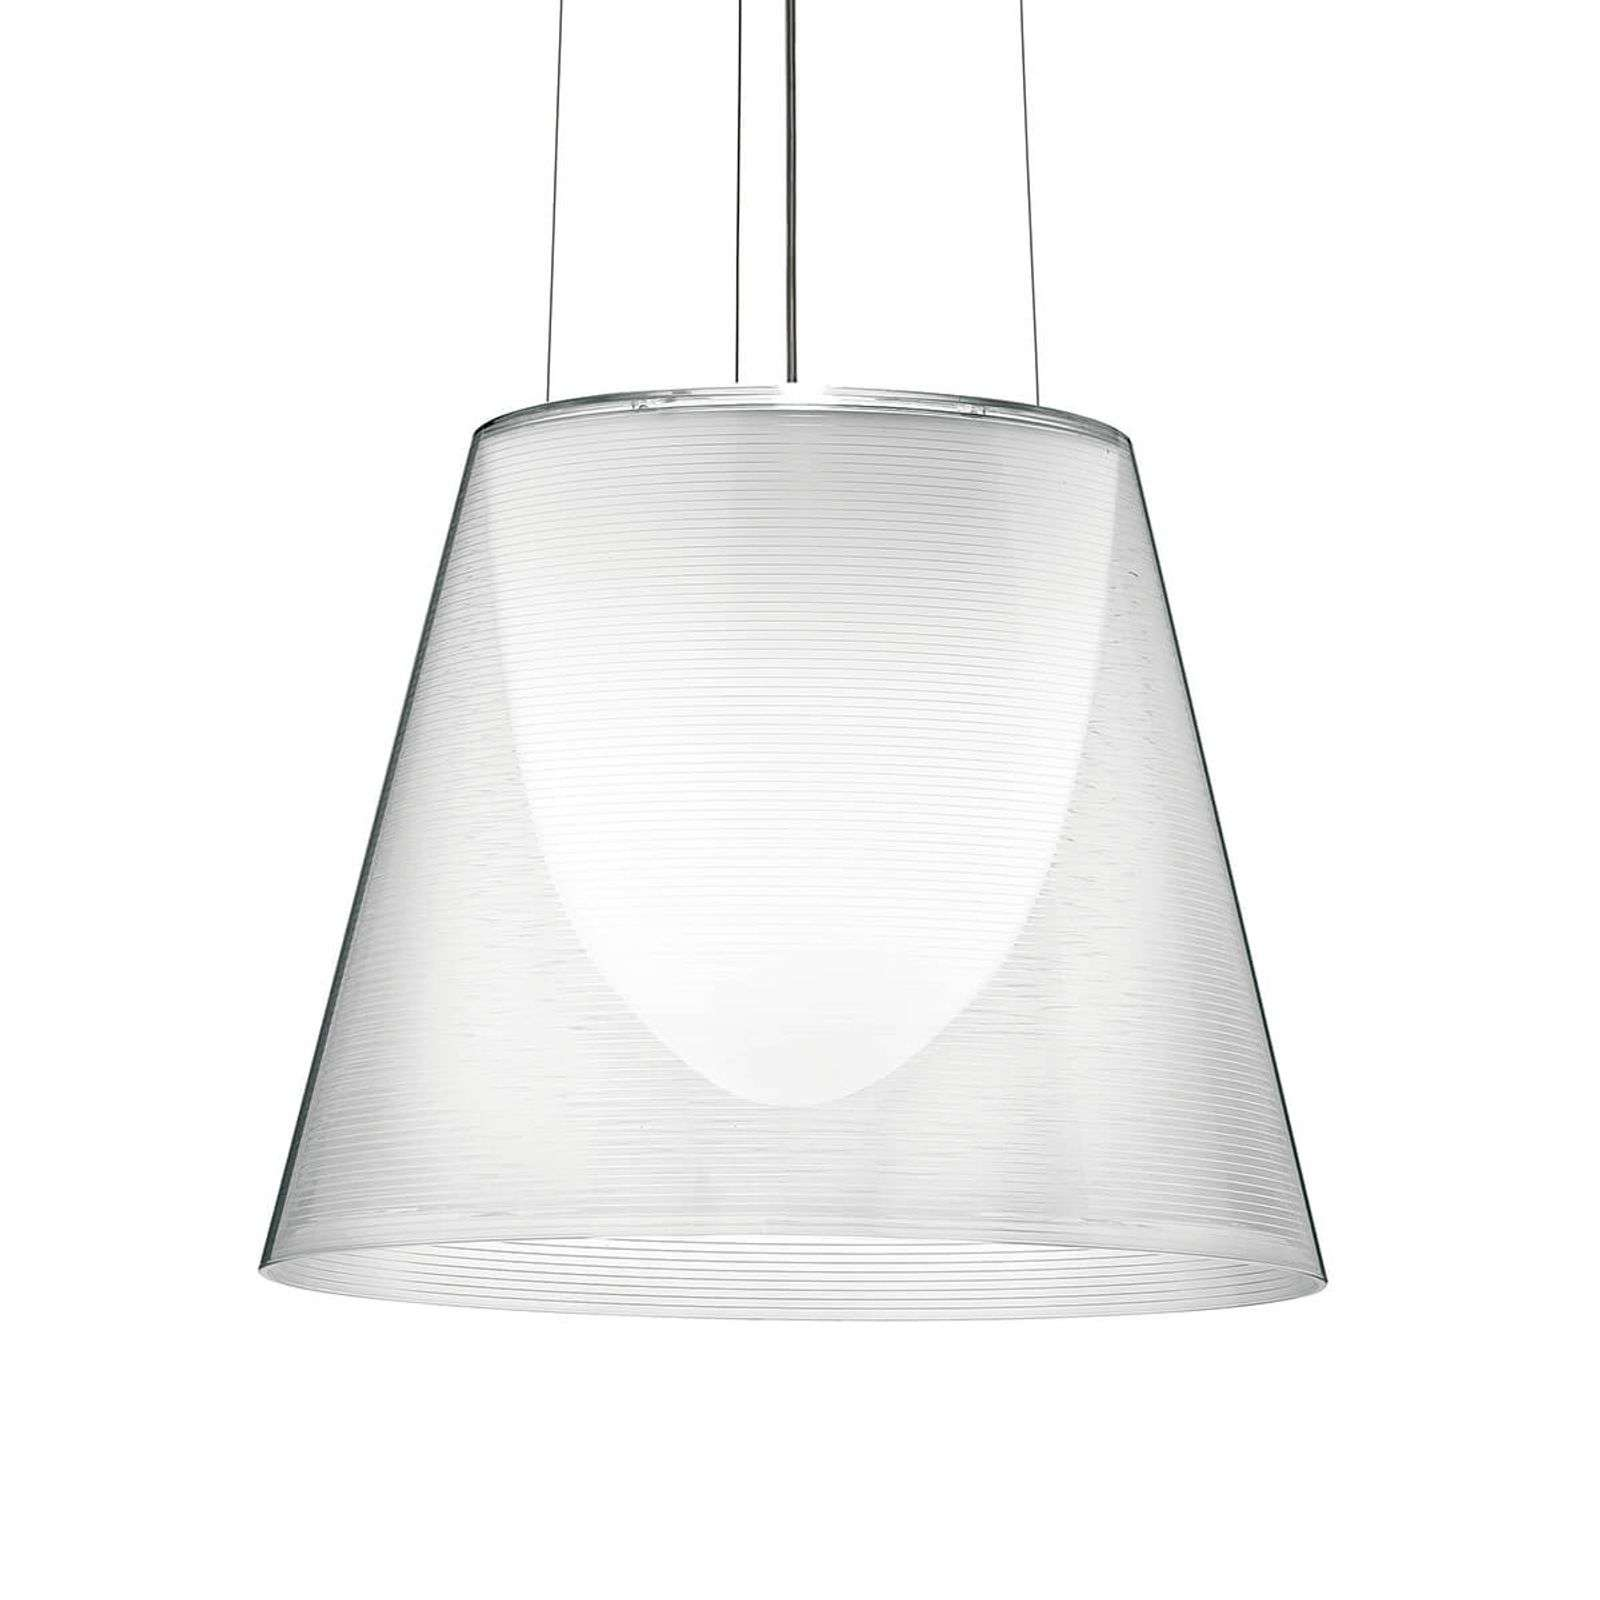 Wall lamps|Ceiling lights Contemporary hanging light KTRIBE S2, transparent